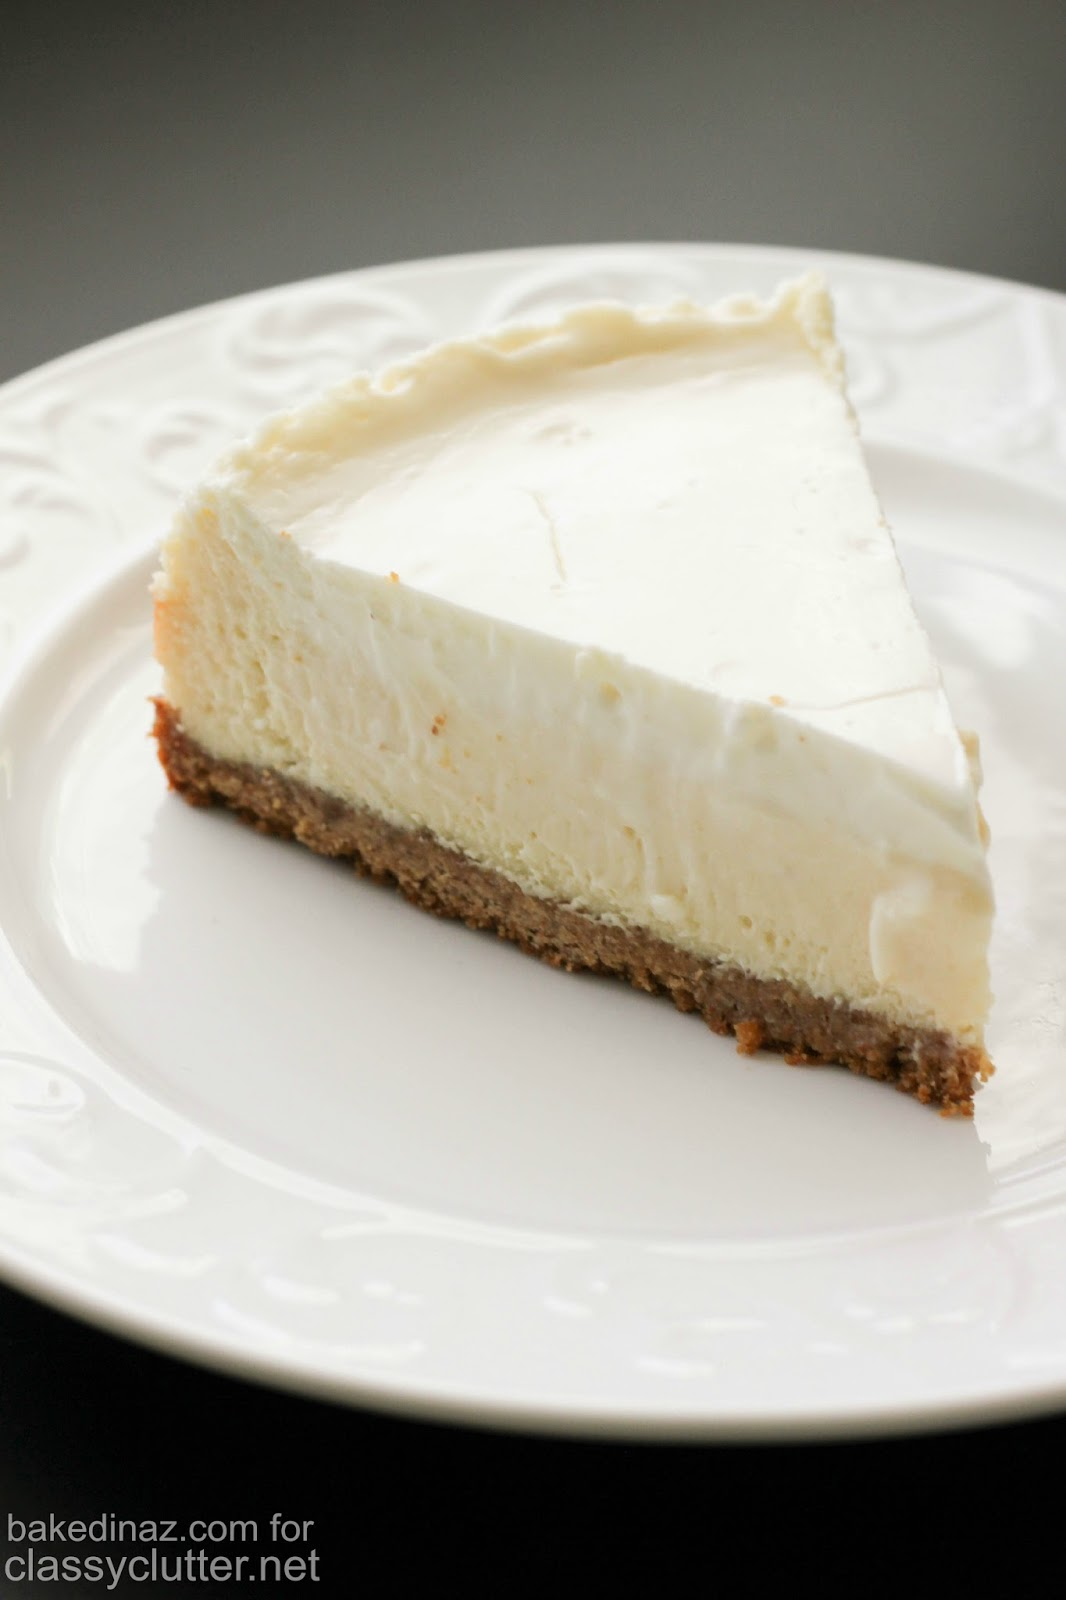 Cheese Cake Cream: Cooking Recipes 11